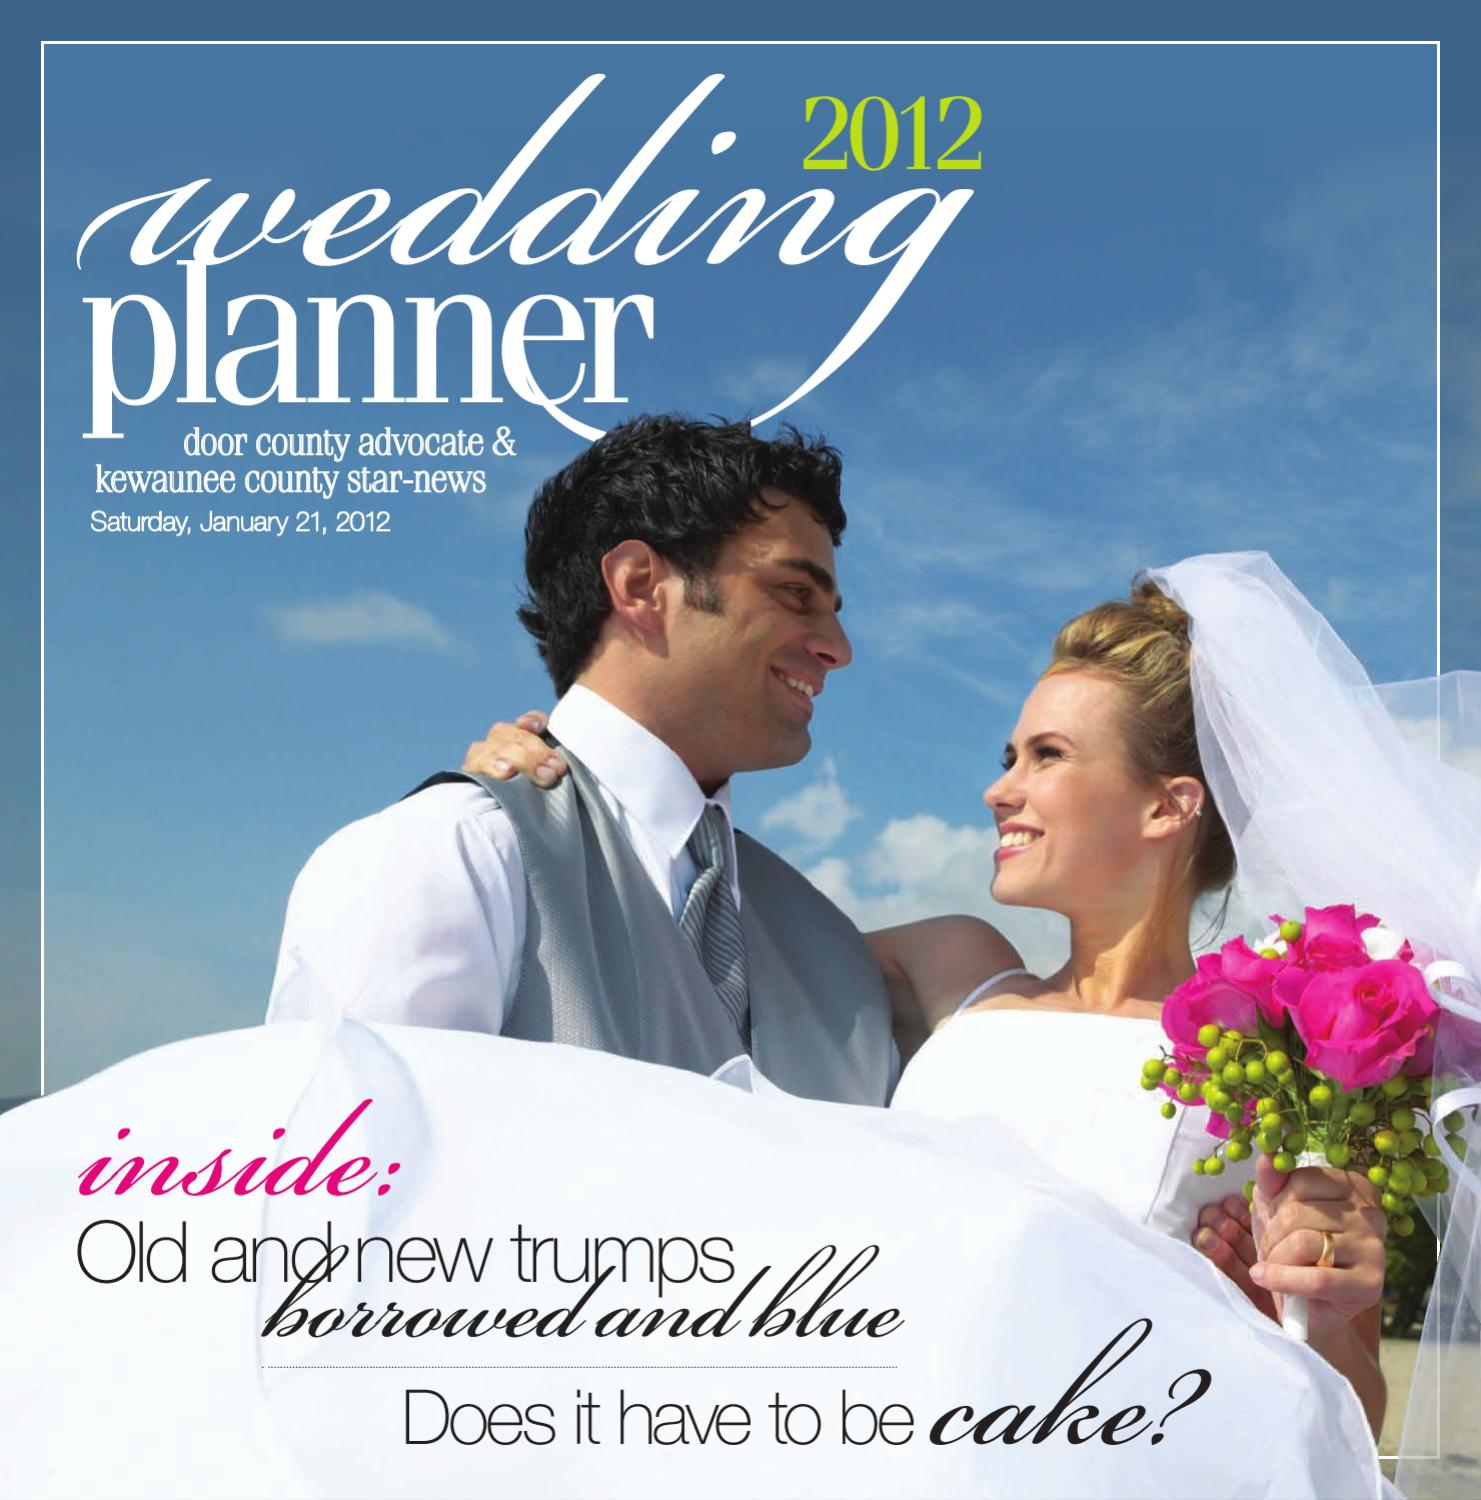 076446998 Wedding planner by Gannett Wisconsin Media - issuu